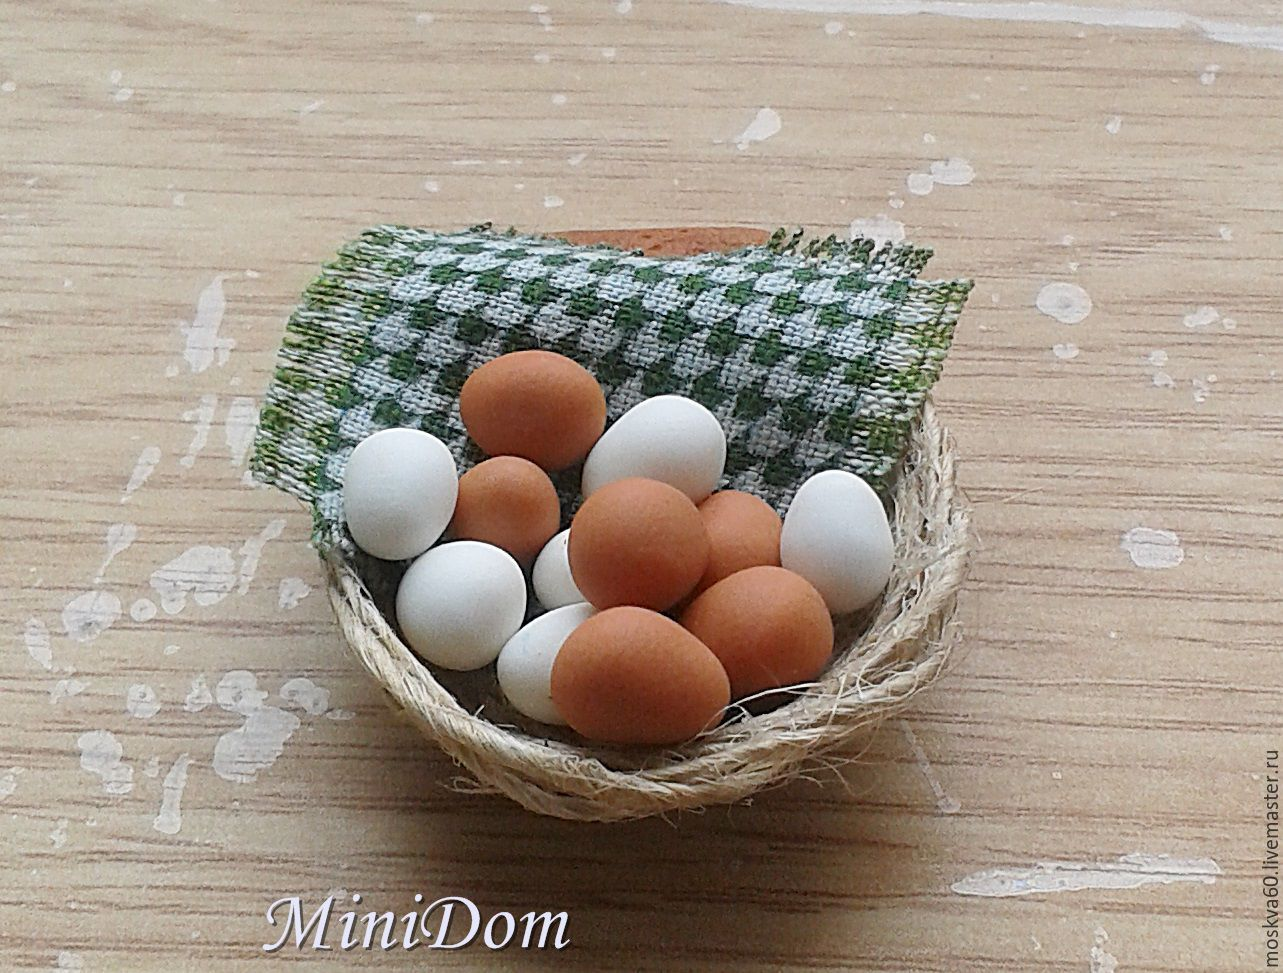 Food for dolls Doll food Eggs homemade Dollhouse miniatures for Doll house Miniature house for dolls Handmade Dollhouse miniature For Dollhouse accessories for dolls